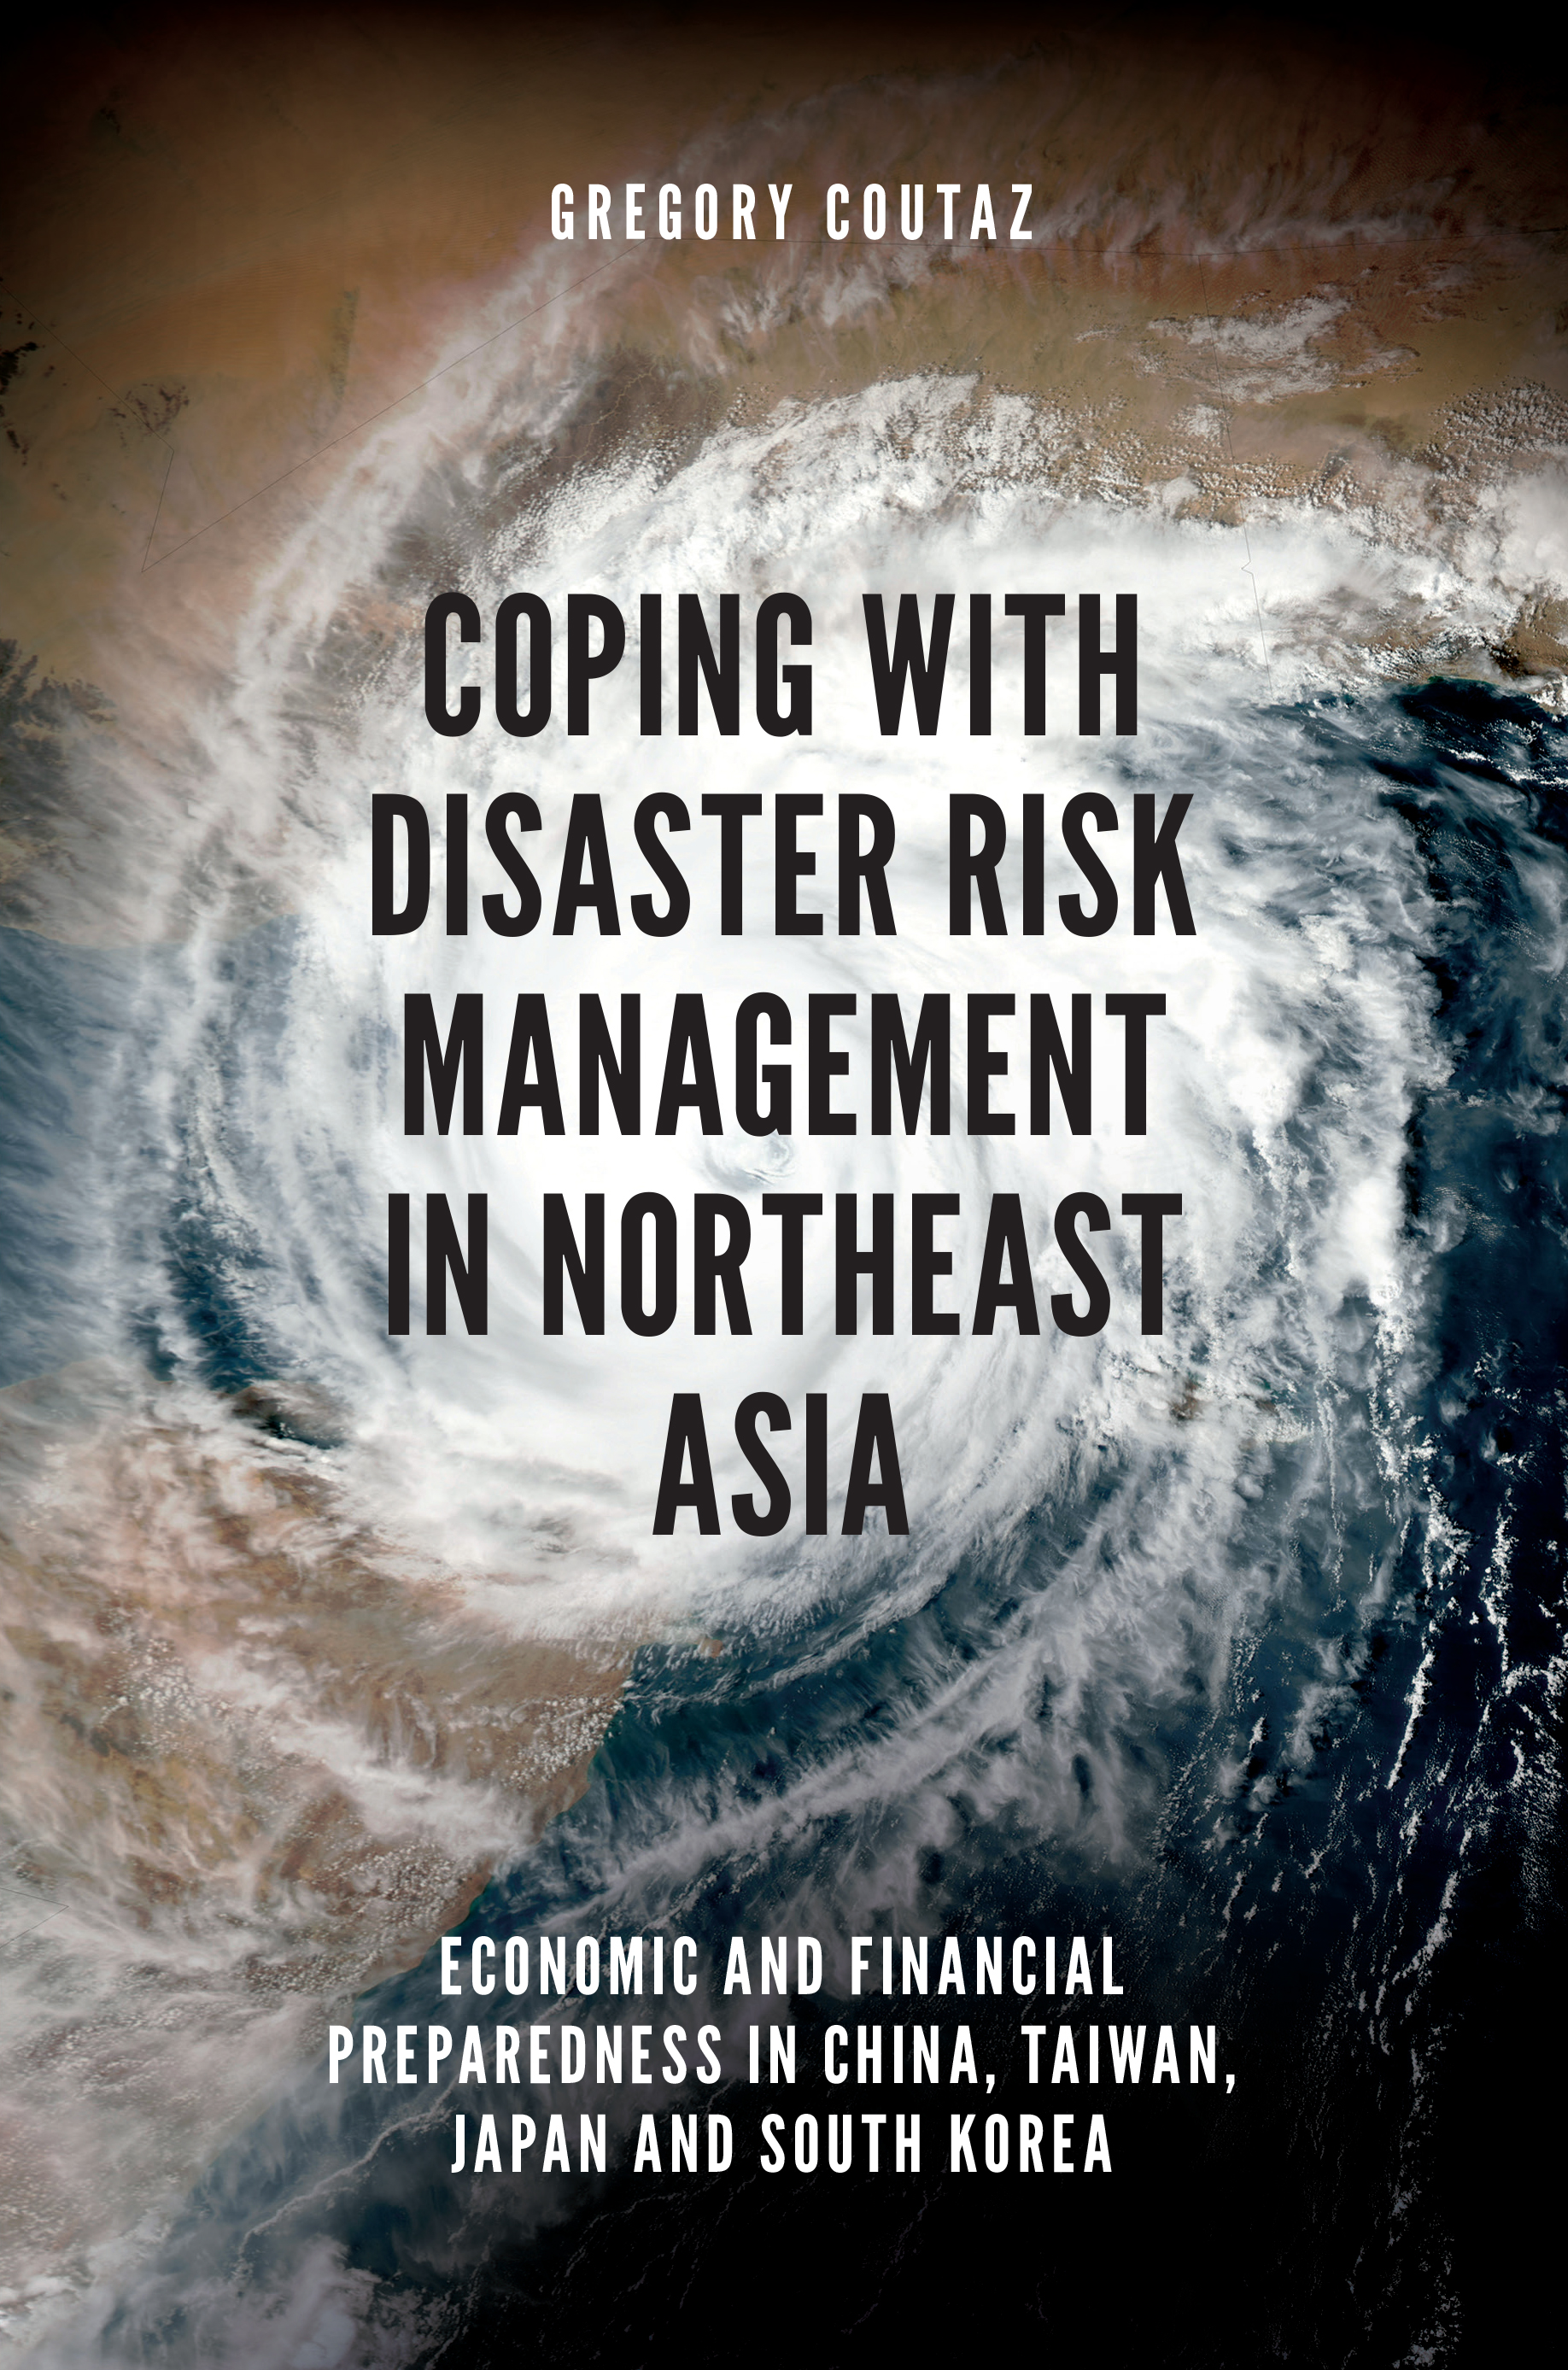 Book cover for Coping with Disaster Risk Management in Northeast Asia:  Economic and Financial Preparedness in China, Taiwan, Japan and South Korea a book by Gregory  Coutaz